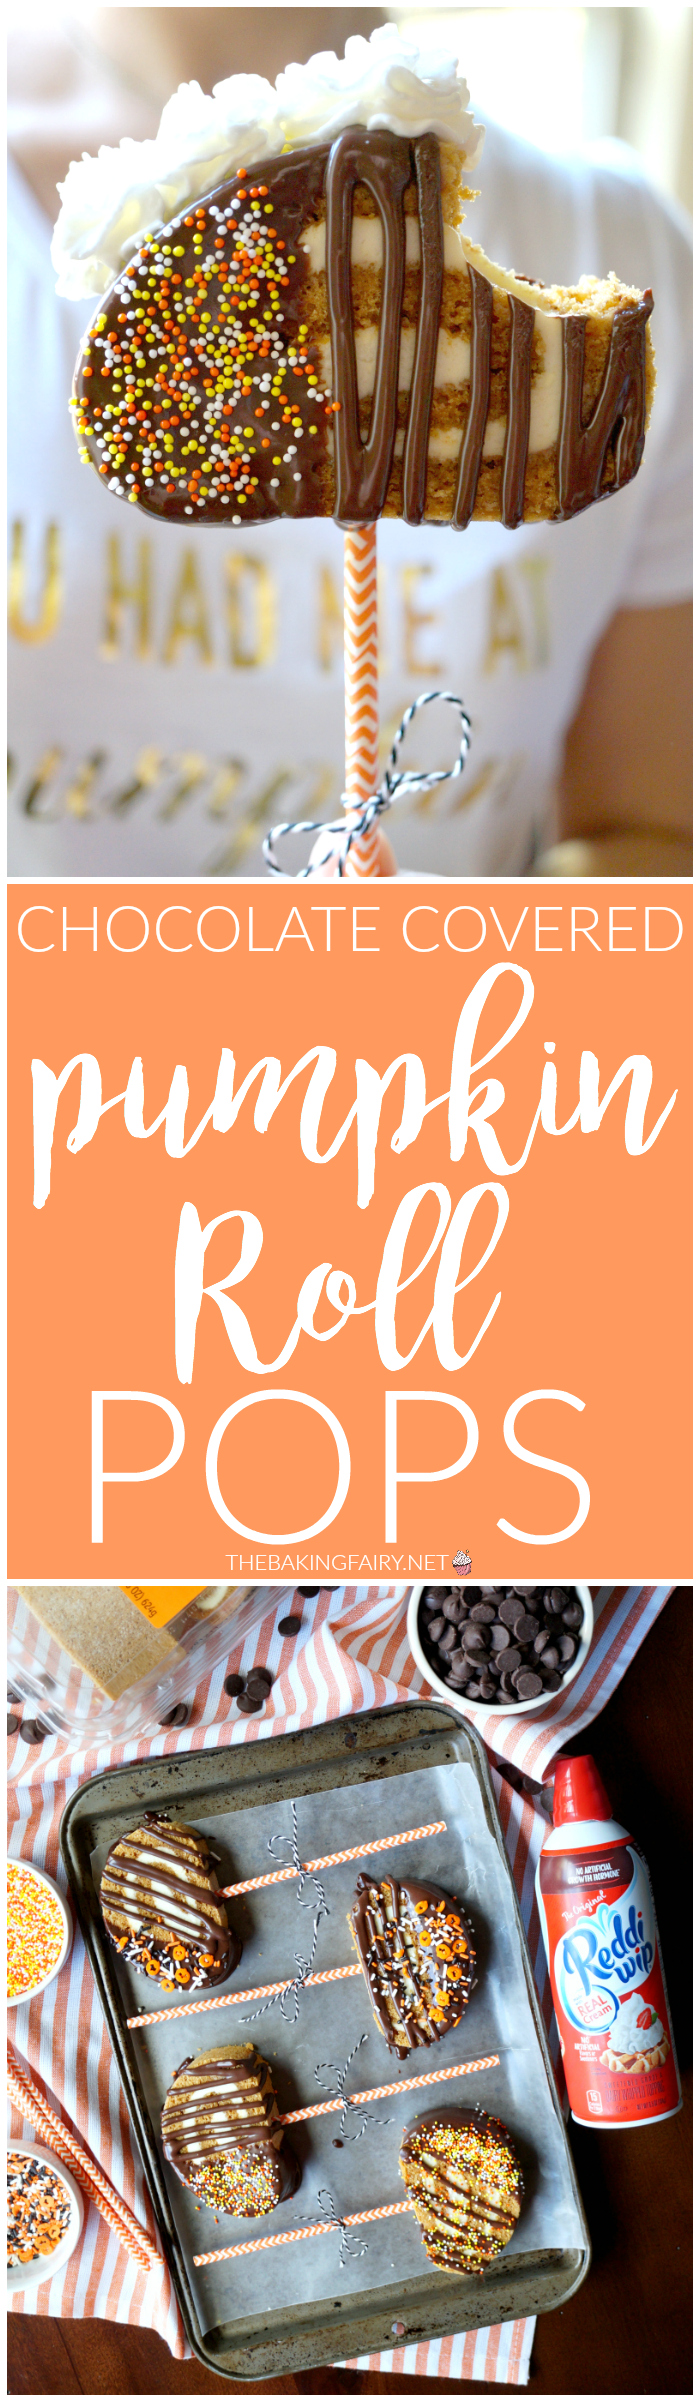 chocolate-covered pumpkin roll pops | The Baking Fairy #reddiforfall #ad